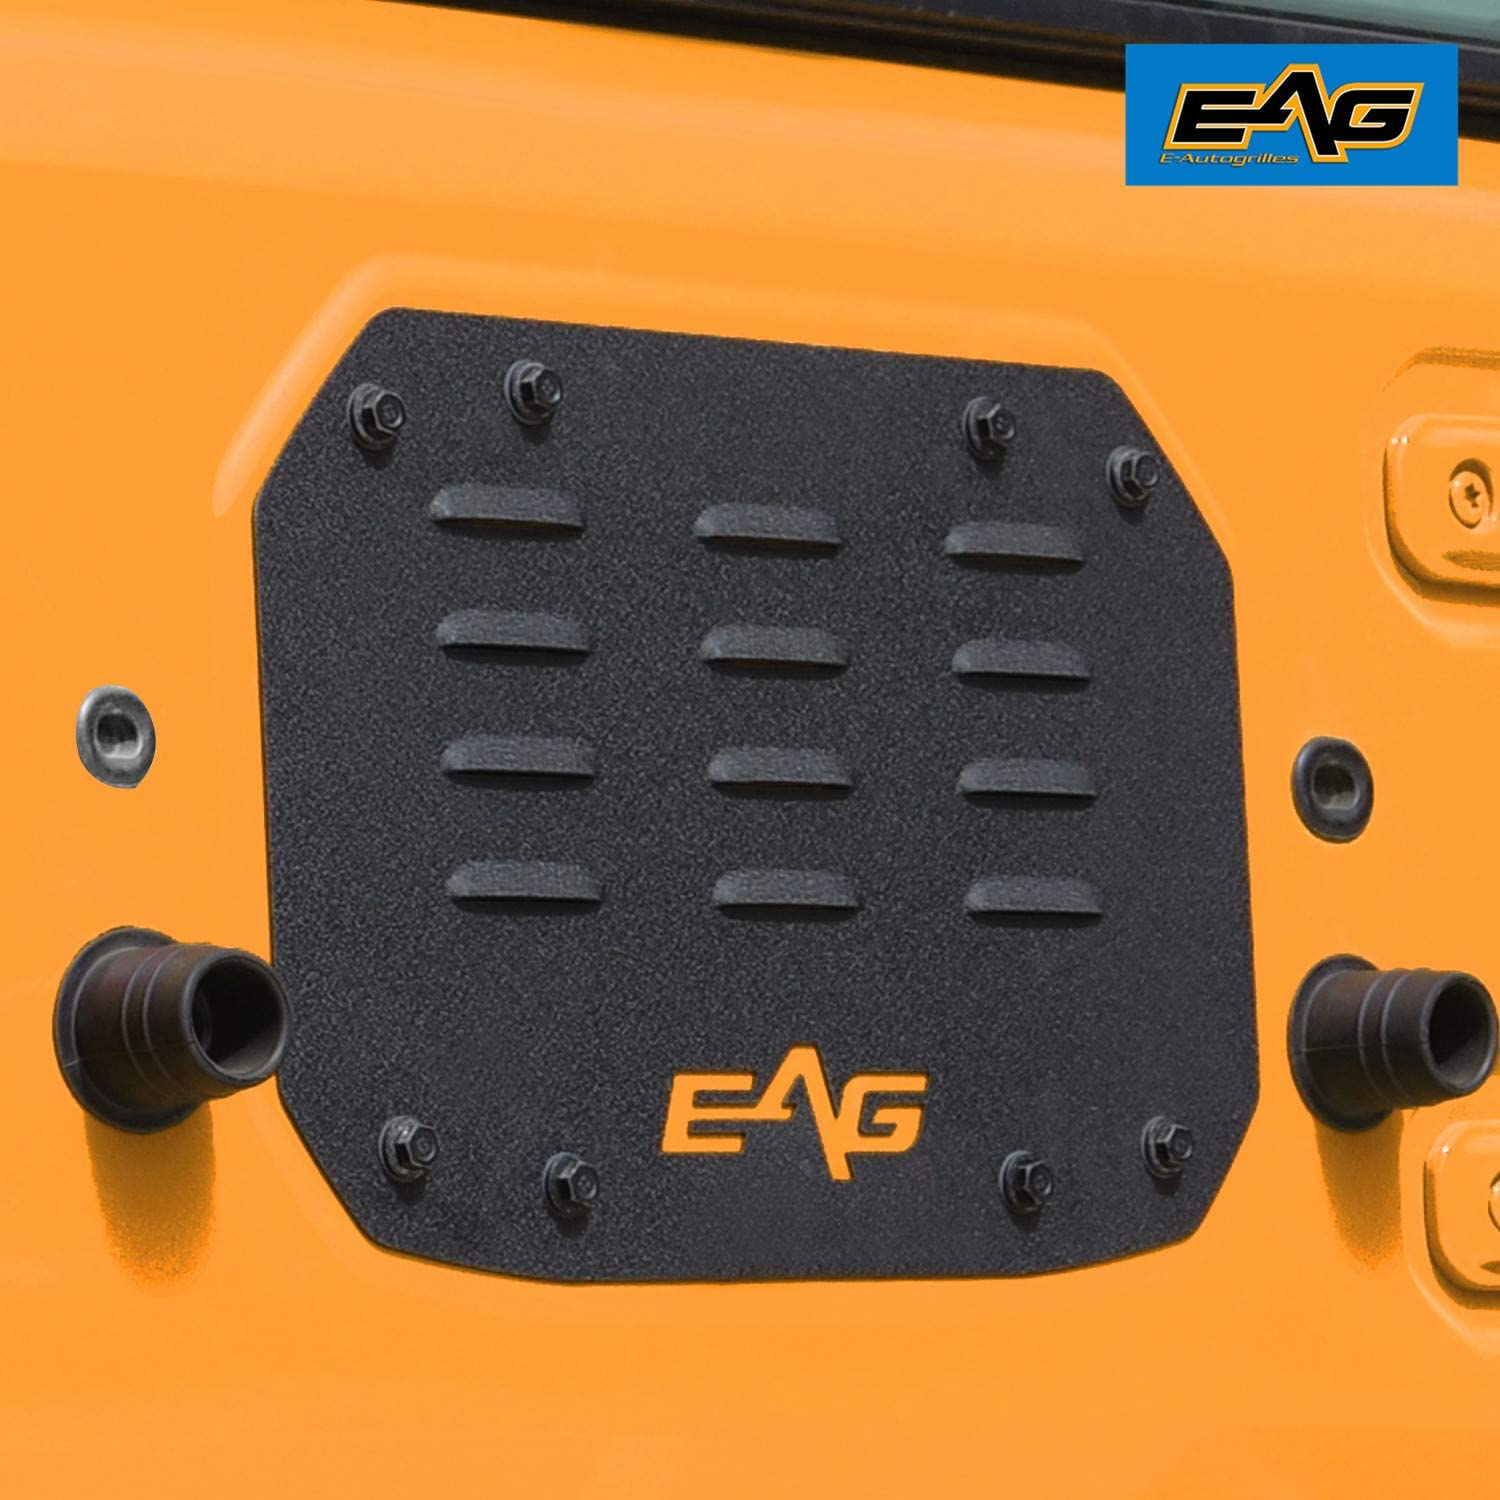 EAG Black Steel Tailgate Vent-Plate Cover Fit for 18-20 Wrangler JL